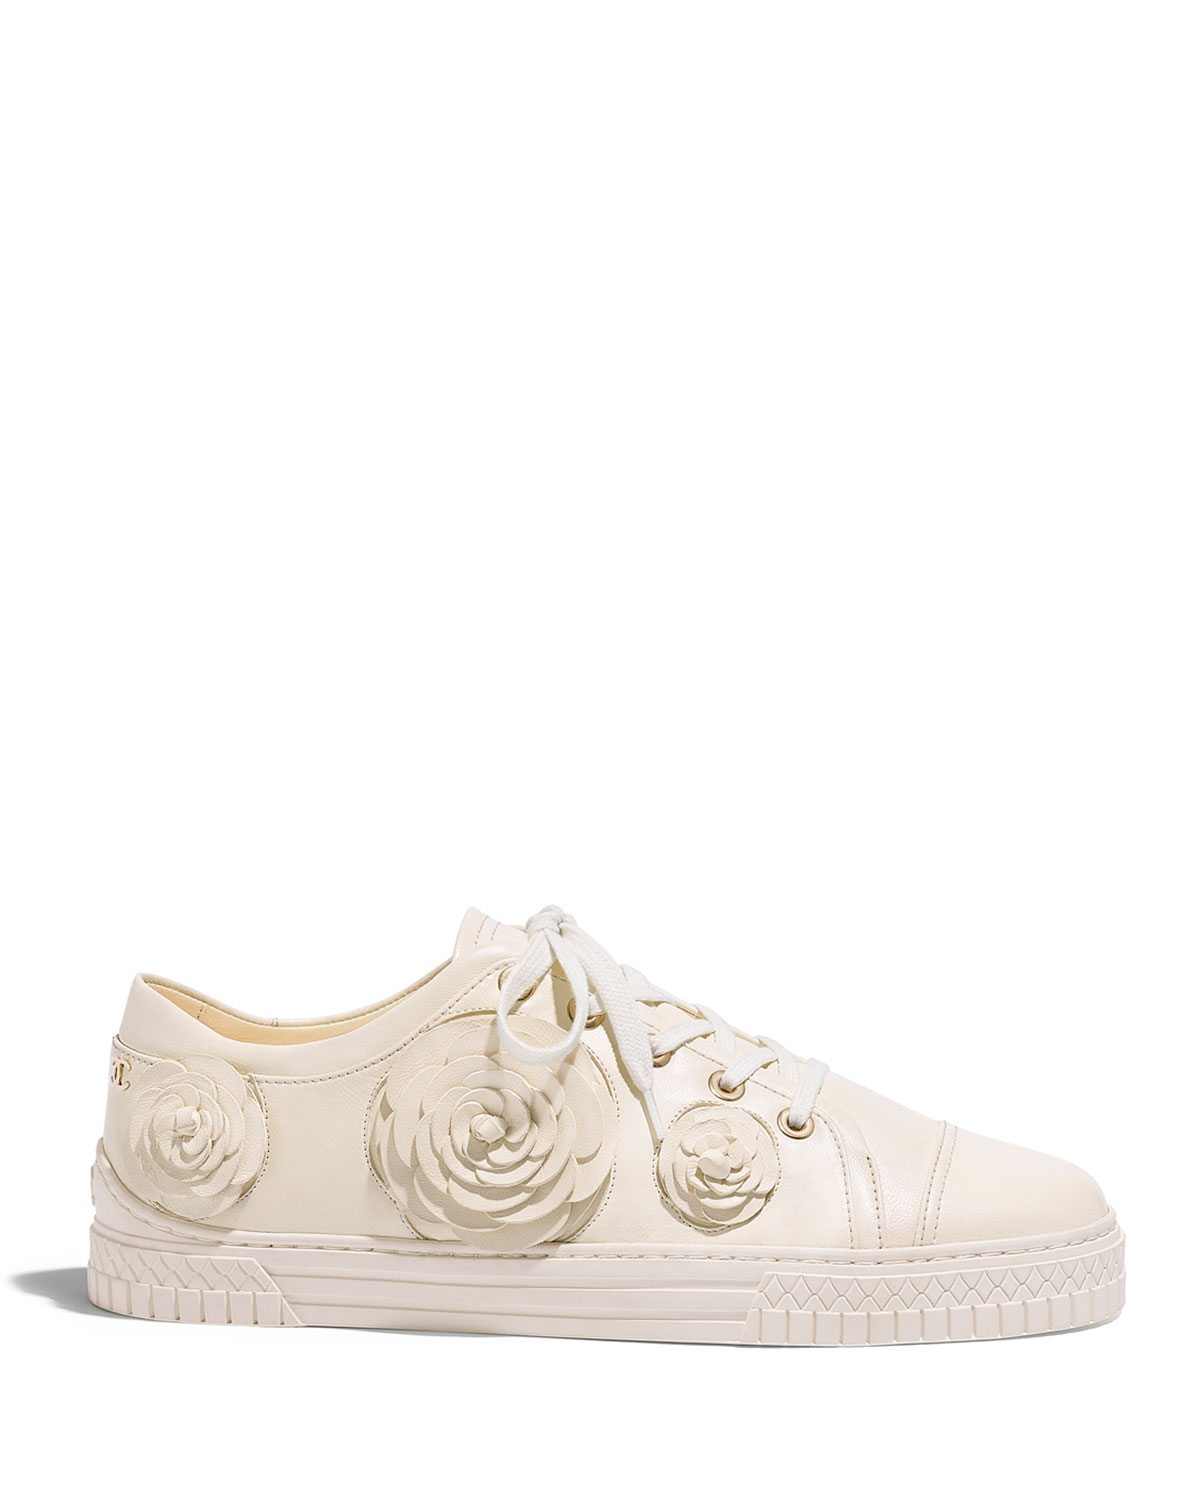 d0ab5fa619c4a7 CHANEL SNEAKERS | Neiman Marcus